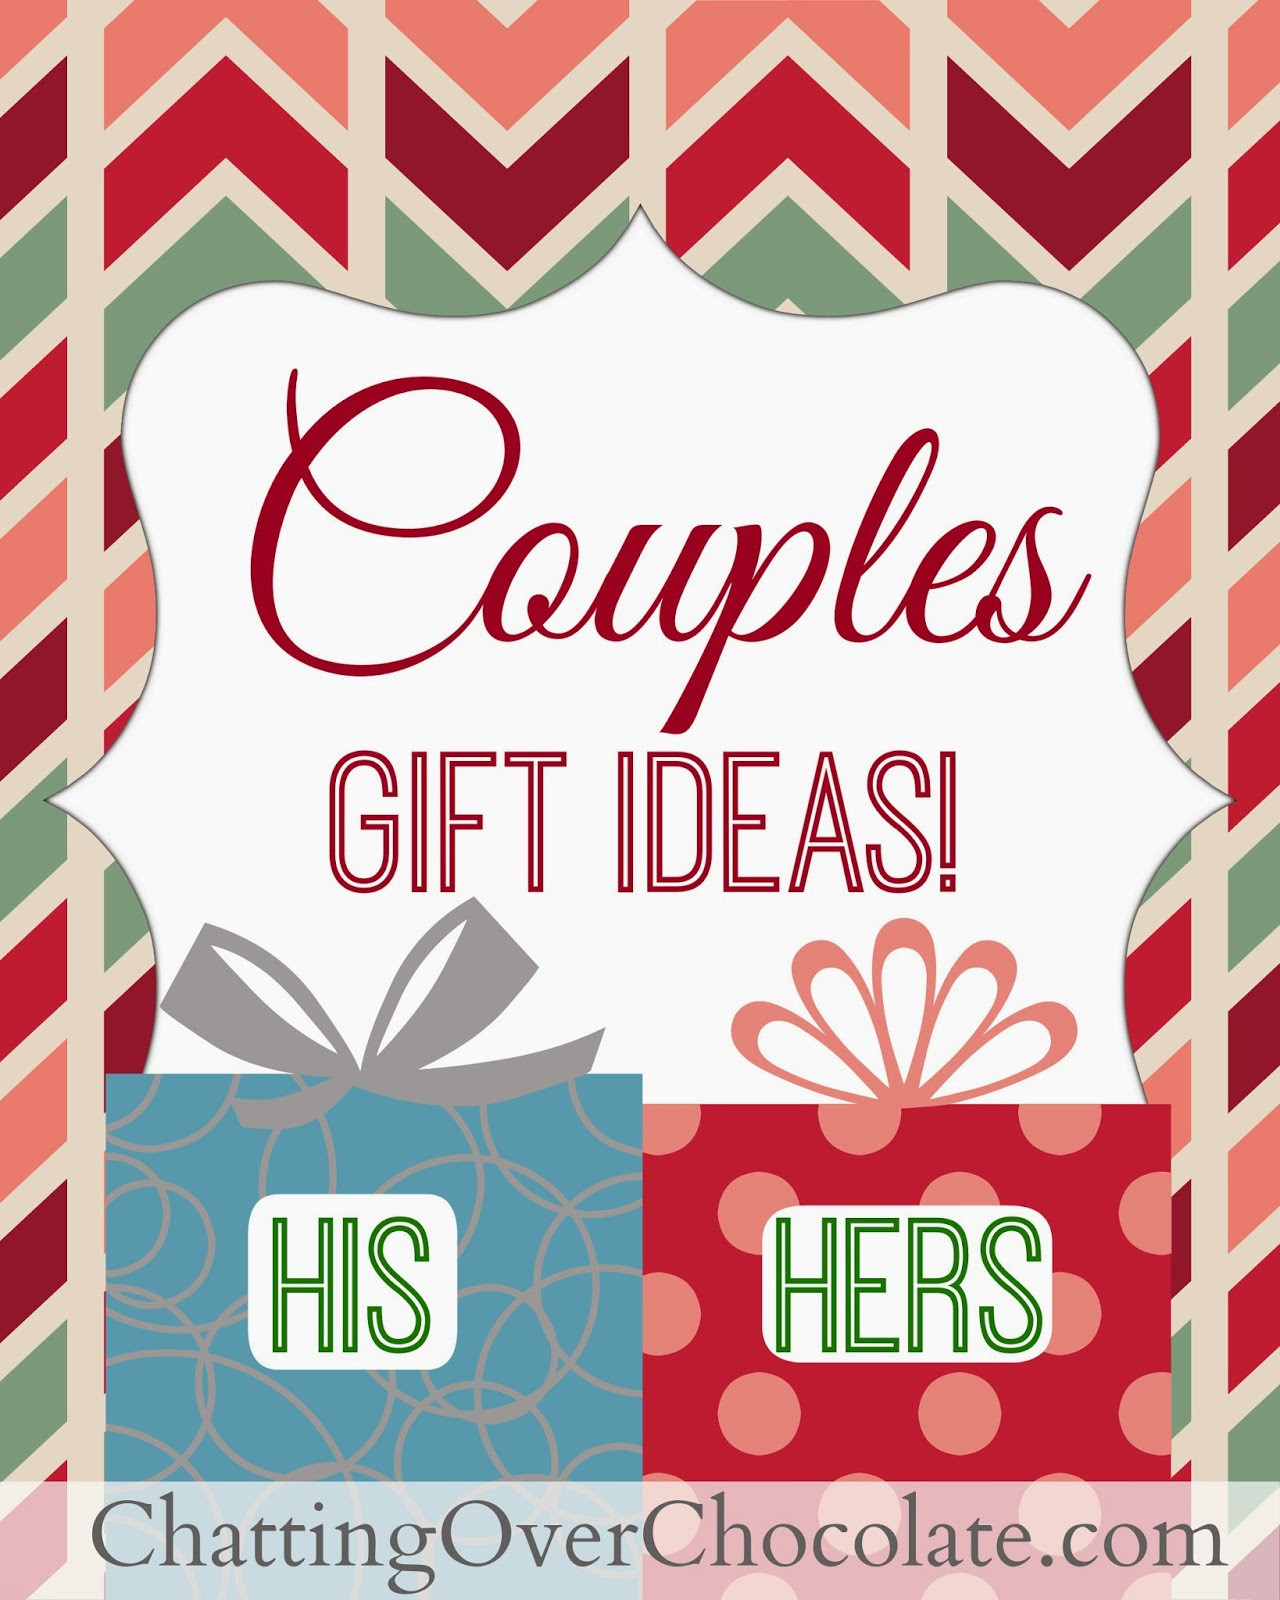 Best ideas about Christmas Gift For Couple Ideas . Save or Pin Chatting Over Chocolate His & Hers Gift Ideas Couples Now.